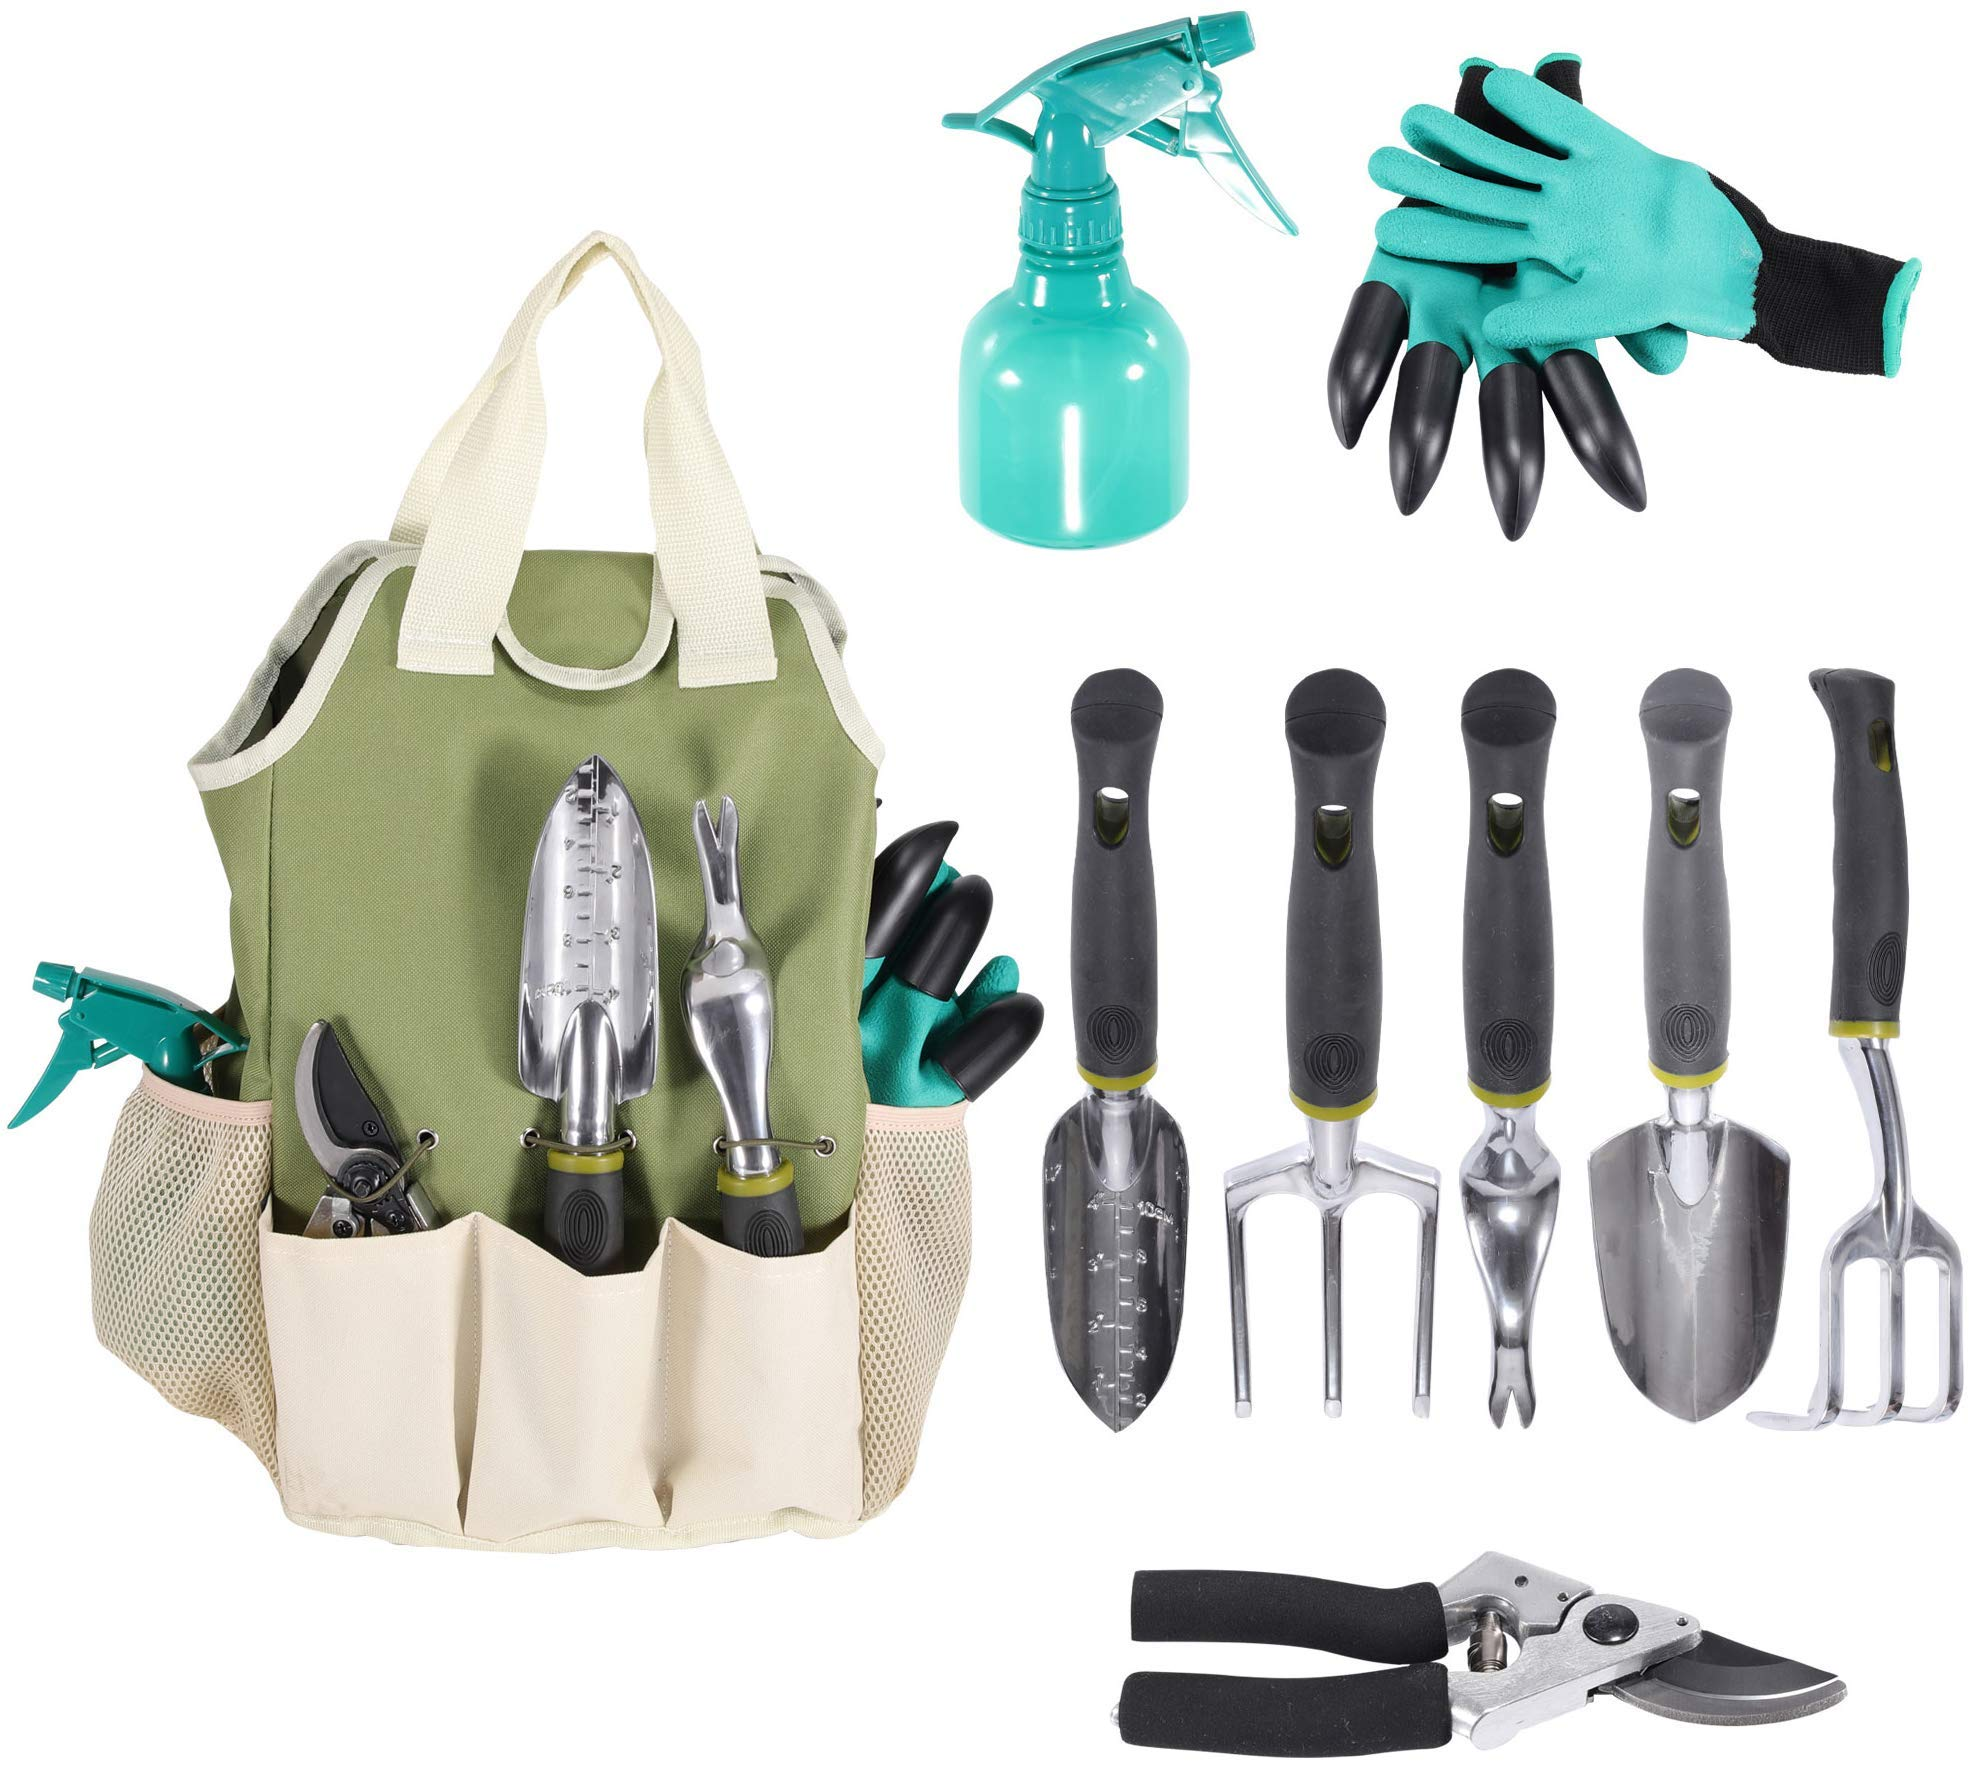 Garden Tool Set | Garden Tools Organizer Tote | Gardening Gloves Included Great Garden Tools for Woman and Men | 9 Piece Garden Accessories Tool Organizer Kit | Gardening Gifts | Gardeners Supply by CALIFORNIA PICNIC